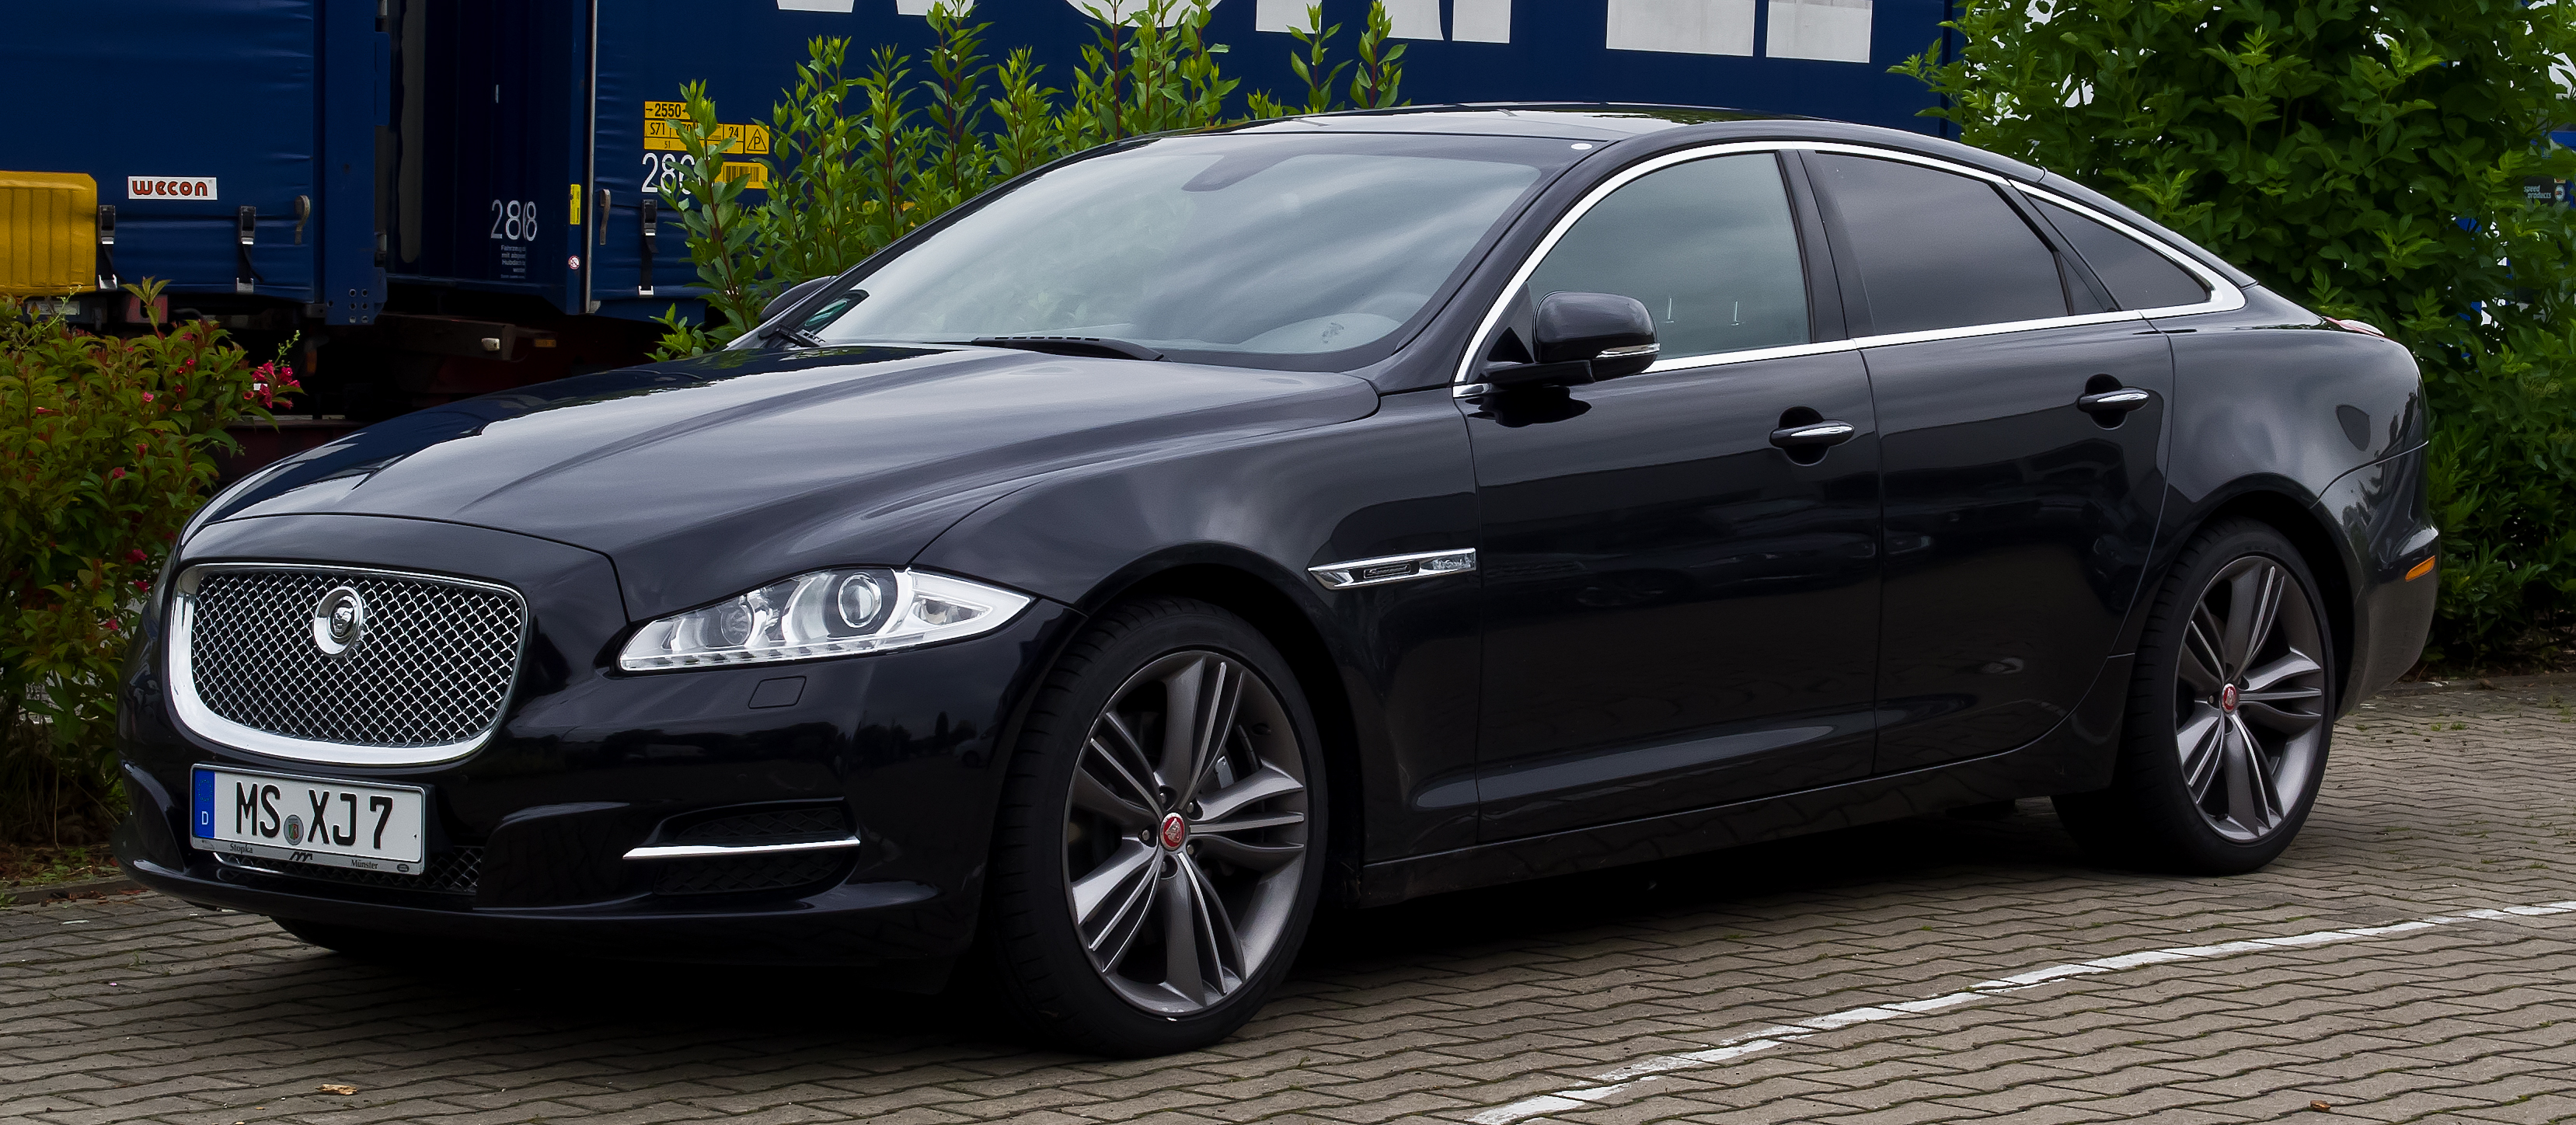 File:Jaguar XJ 3.0 D-S Supersport (X351)